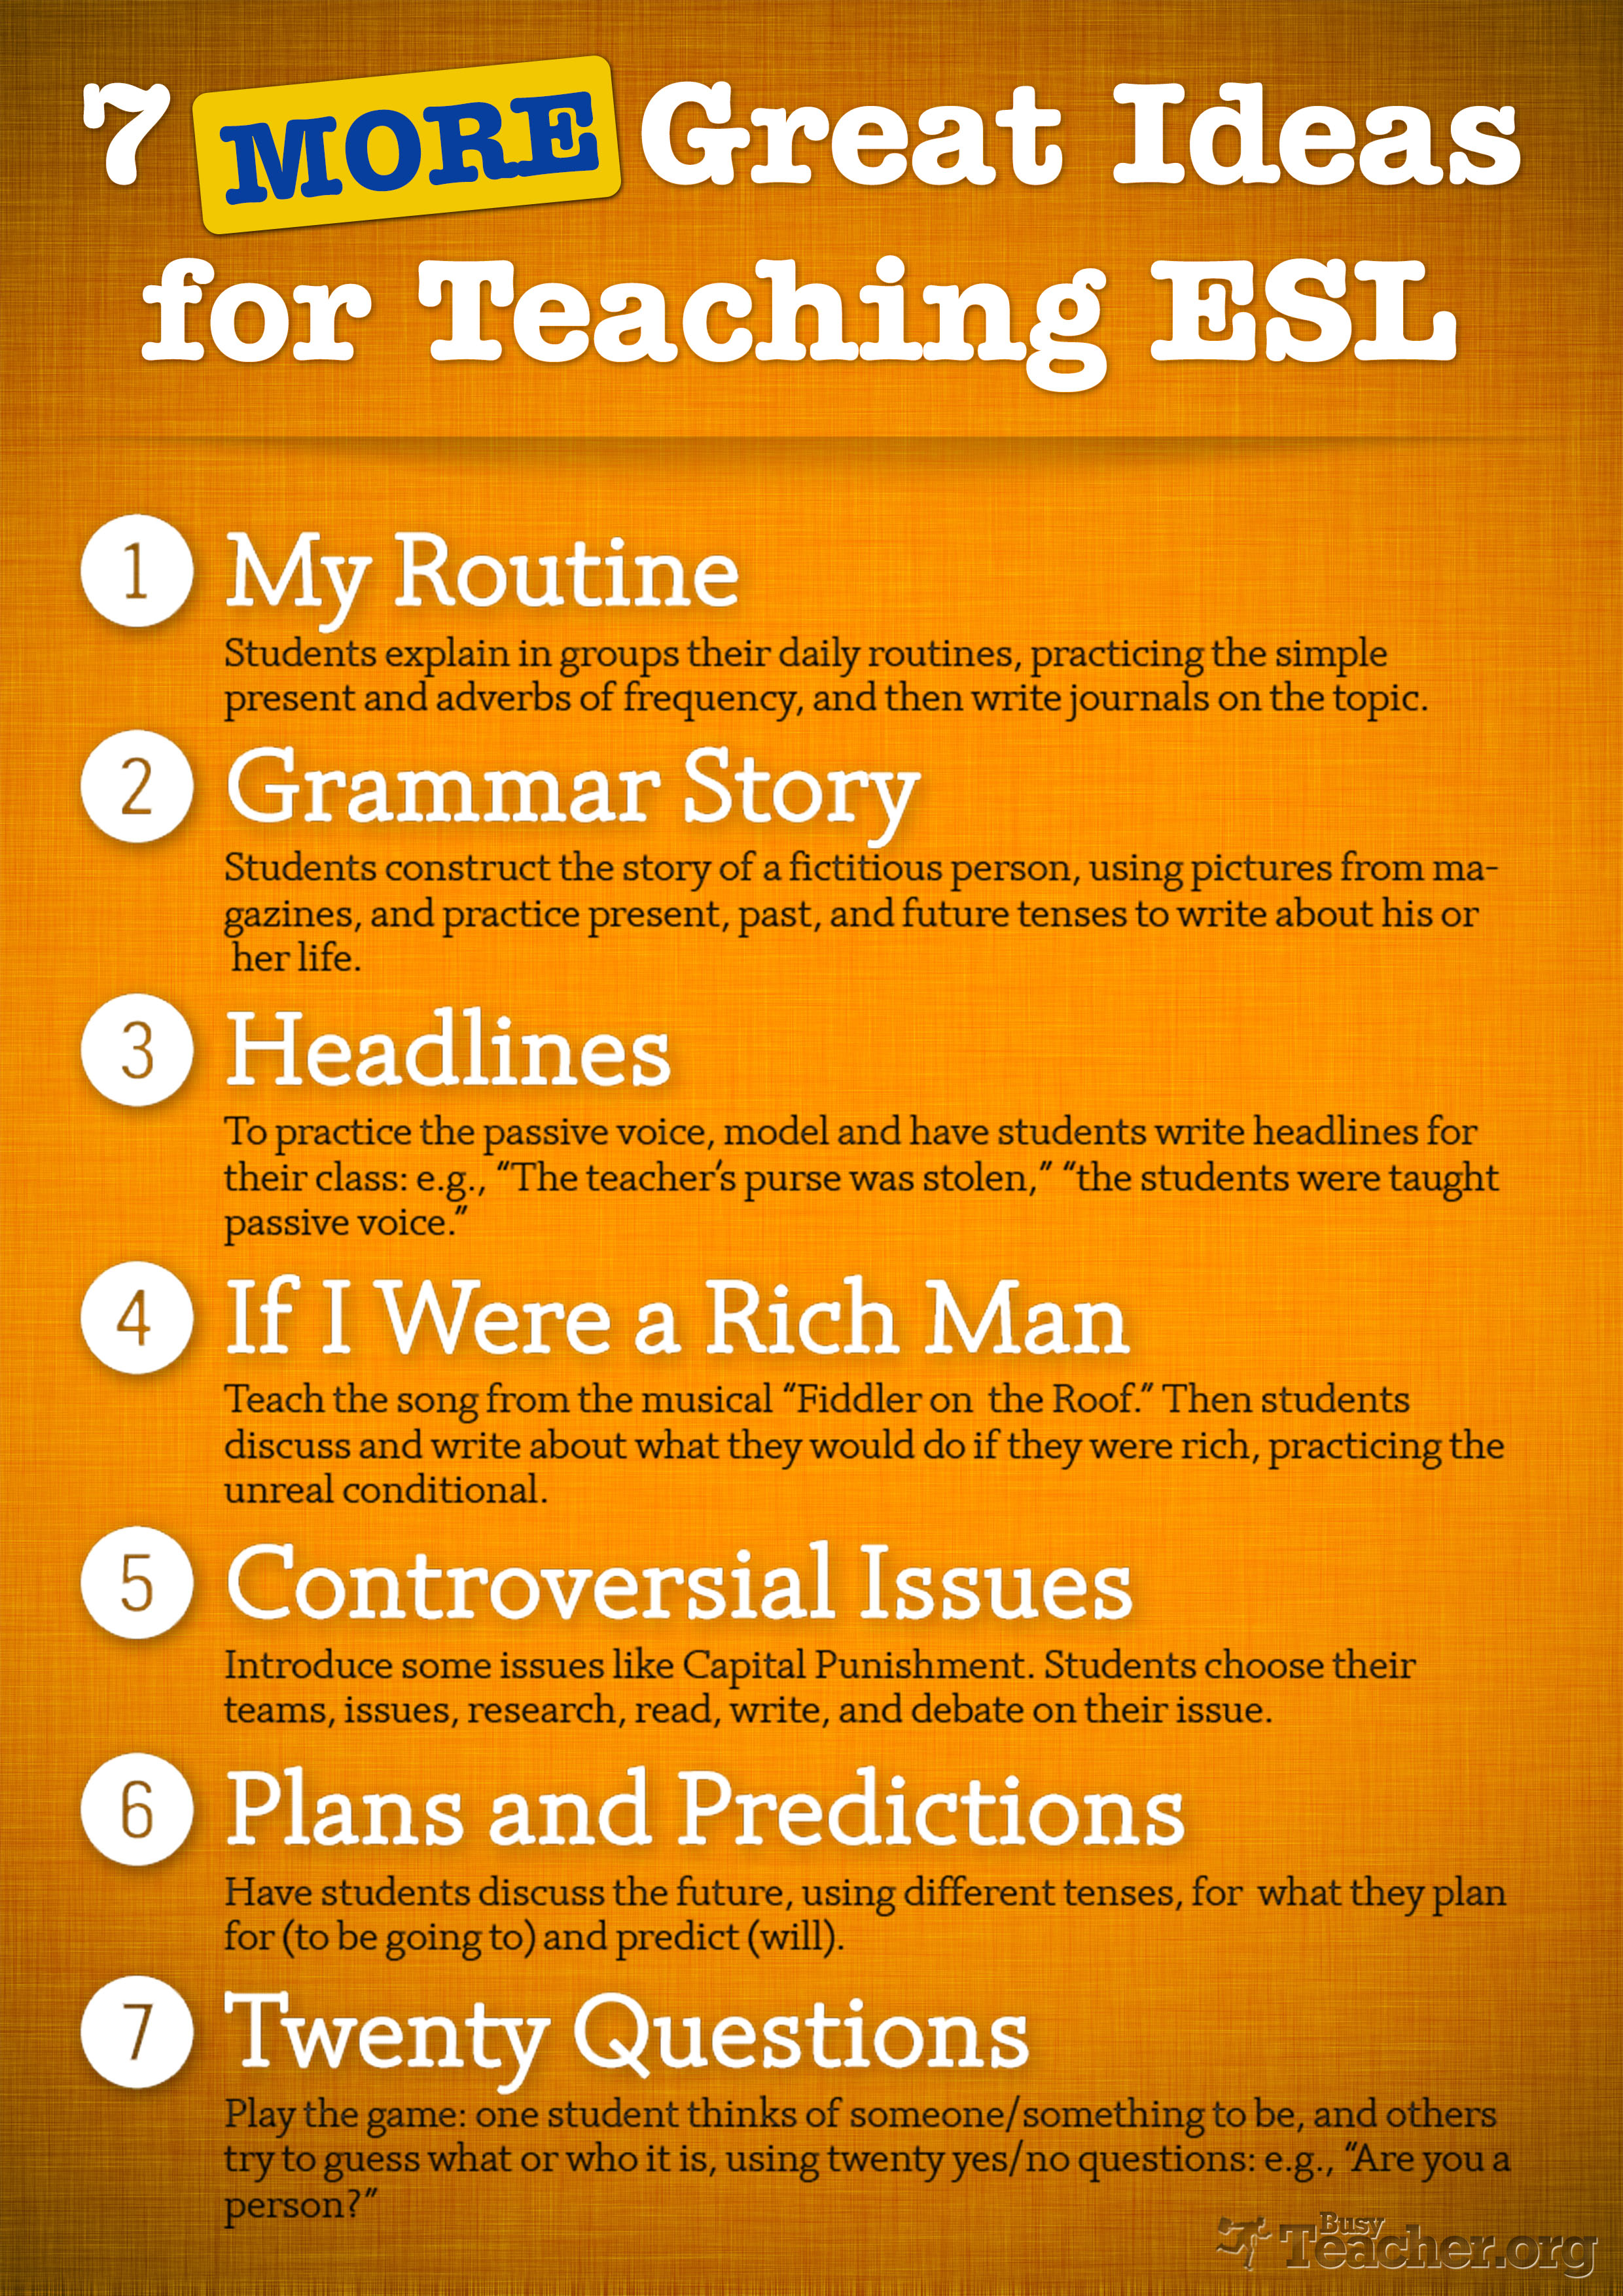 7 More Great Ideas For Teaching Esl Poster